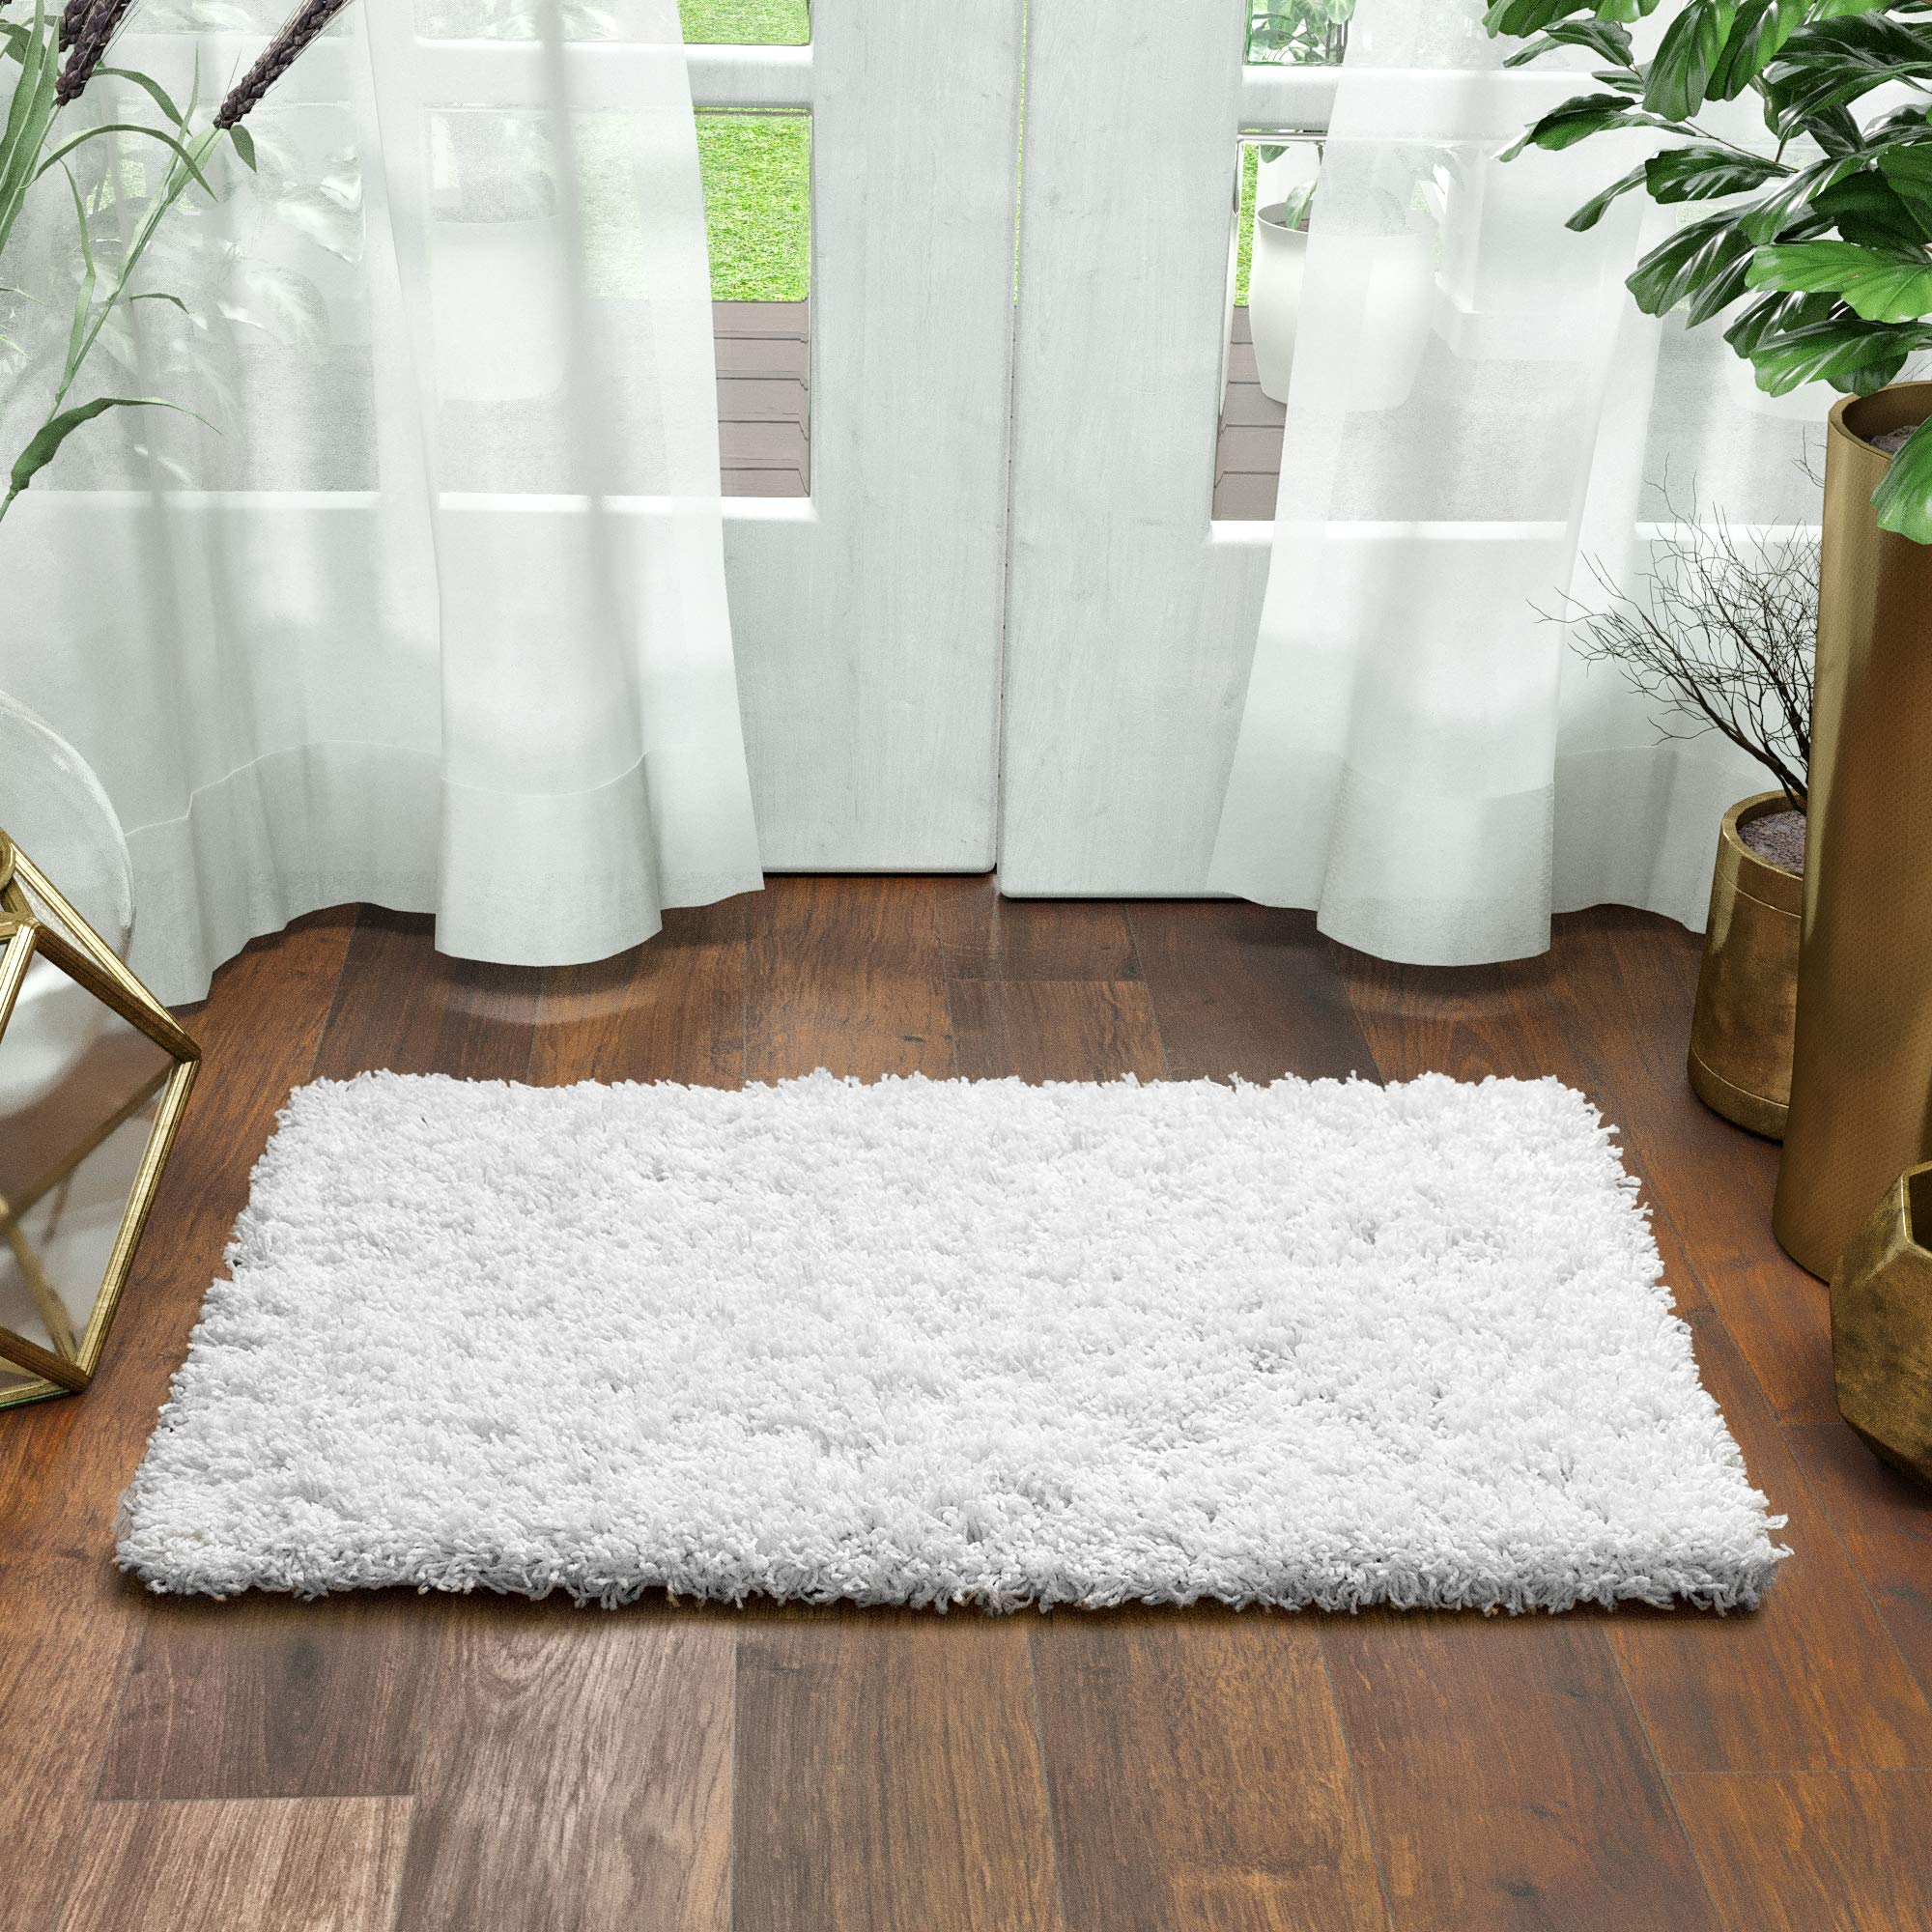 Super Area Rugs Ivory White Shag Rug, 2-Feet by 3-Feet, 2x3 Stain-Resistant Non-Shed Easy Care Mat